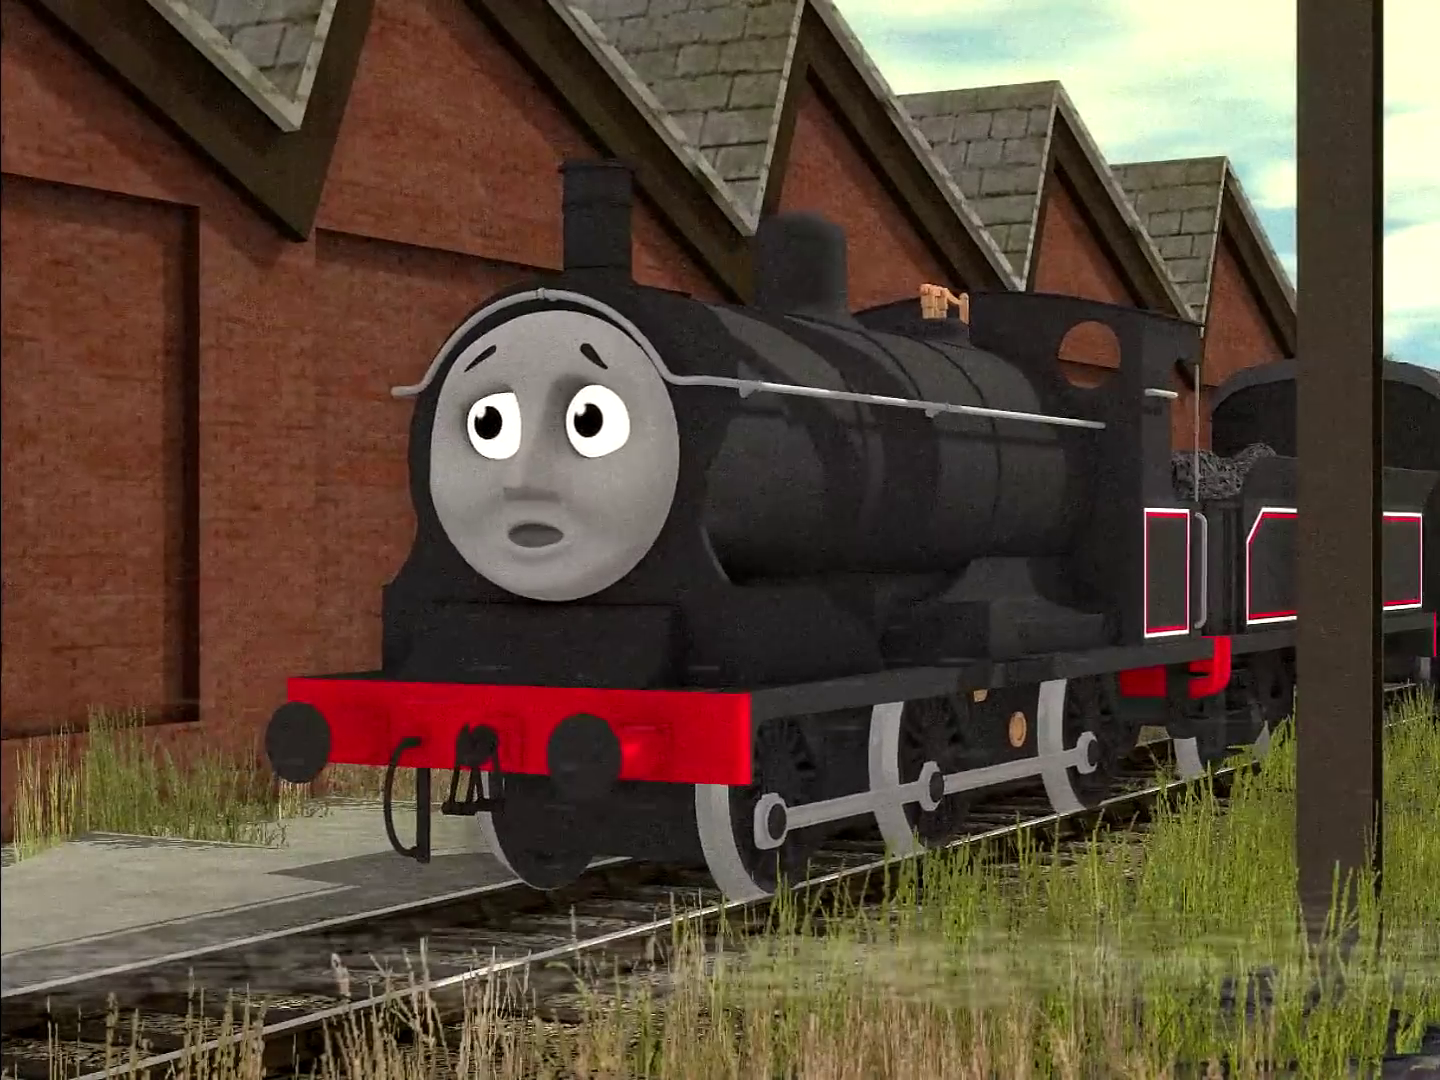 The Missing Coach (Trainz Remake)